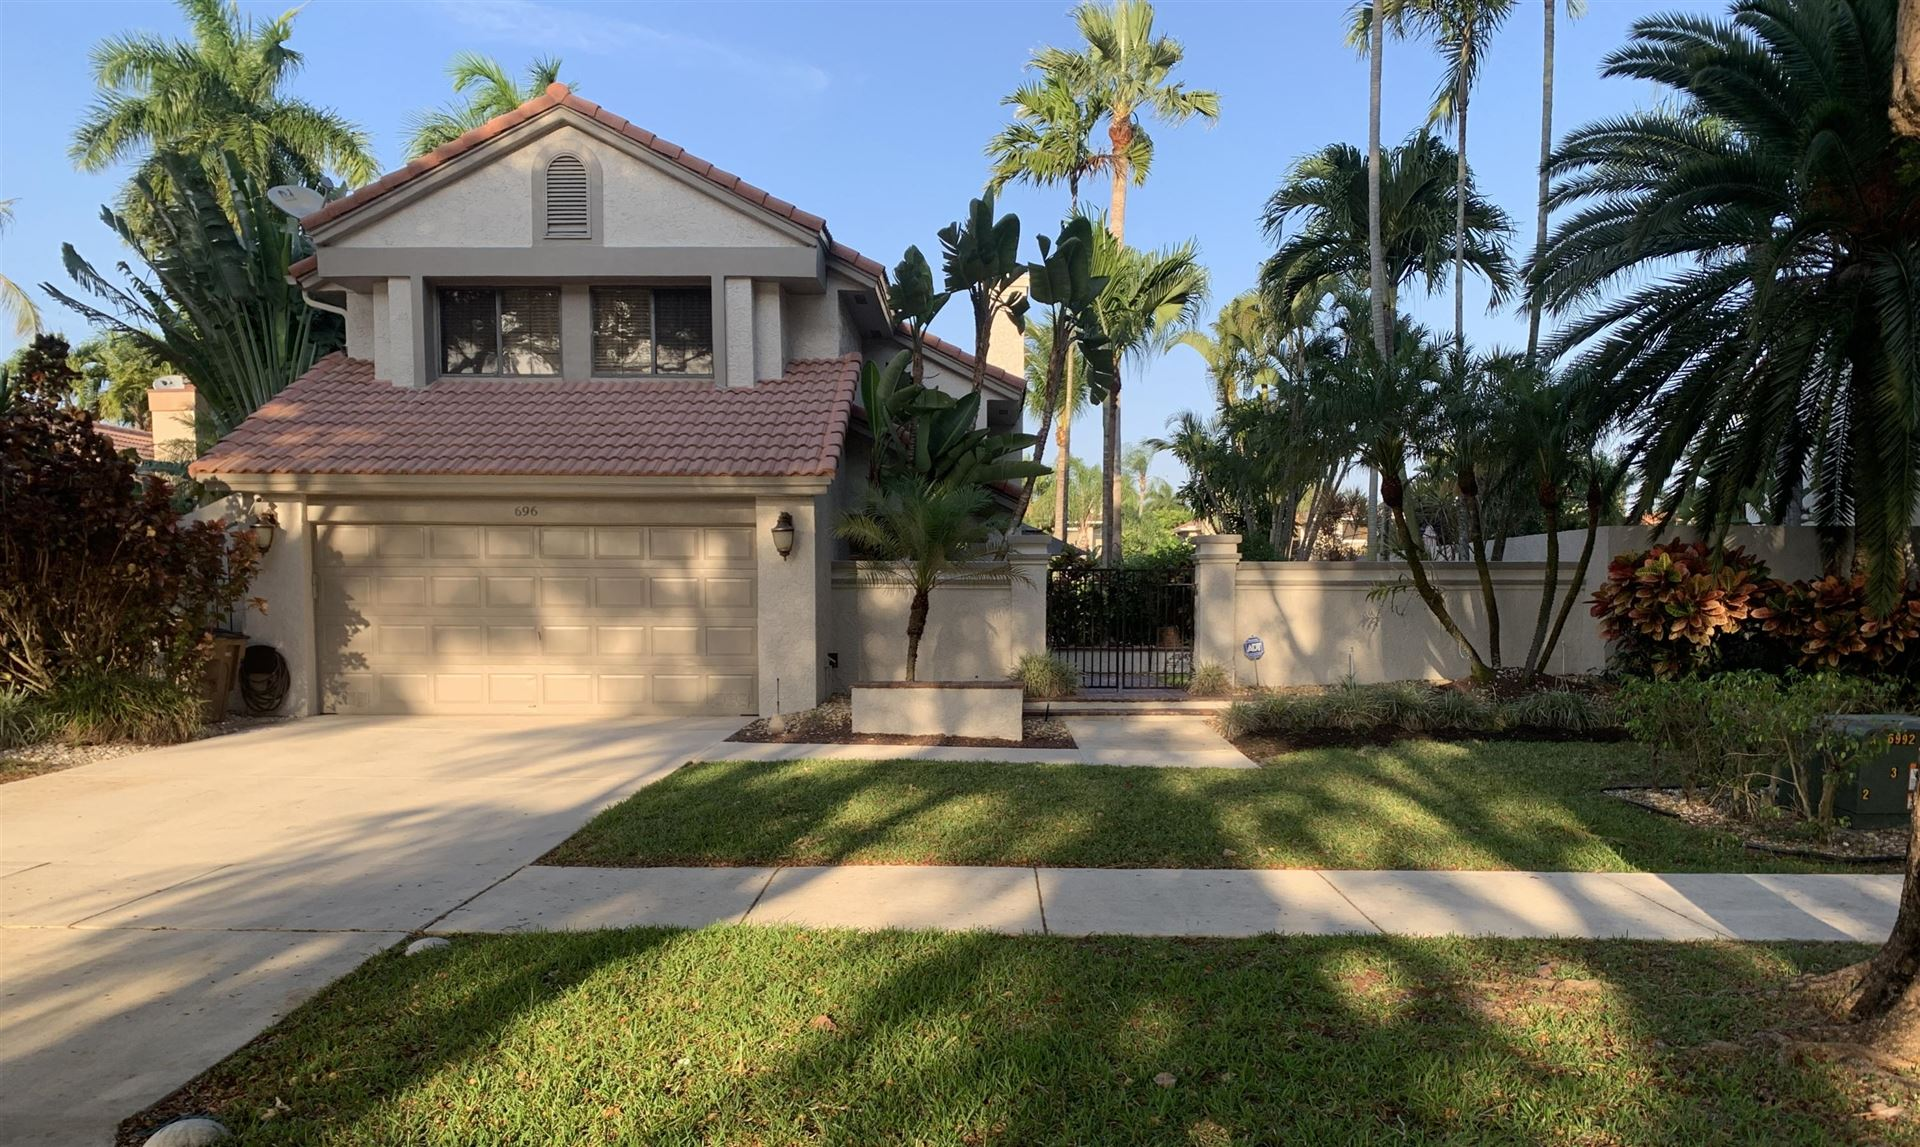 Photo of 696 NW 38th Avenue, Deerfield Beach, FL 33442 (MLS # RX-10710836)